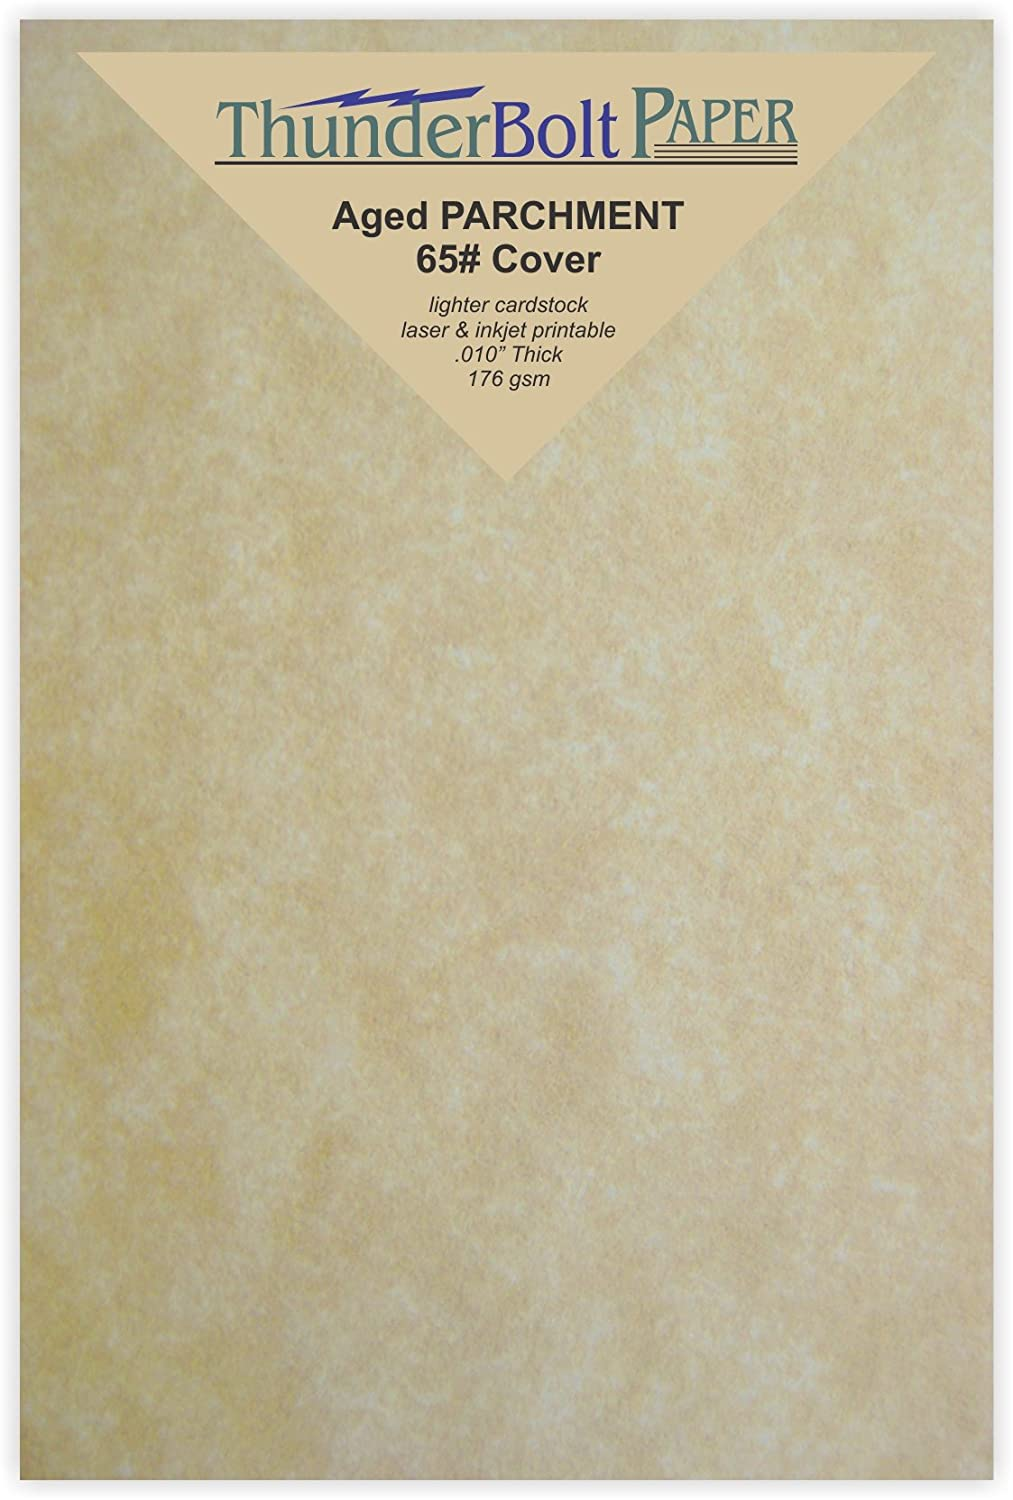 200 Old Age Parchment 65lb Cover Paper Sheets 4 X 6 Inches Cardstock Weight Colored Sheets 4 X 6 (4X6 Inches) Photo|Card|Frame Size - Printable Parchment Semblance by the Pulp Process TBP 5219968